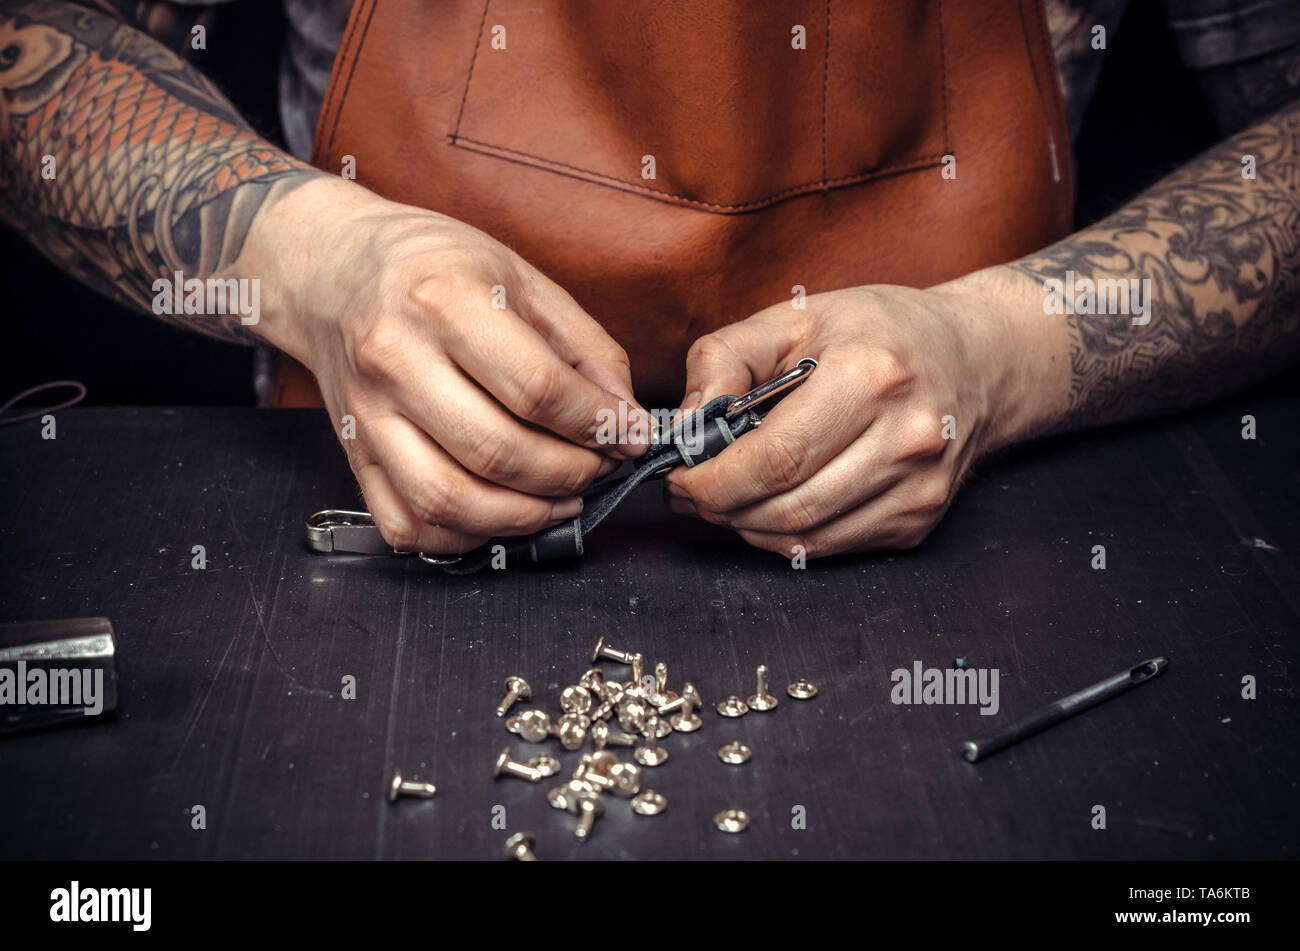 Leather workman creates quality product of leather at his place of work - Stock Image